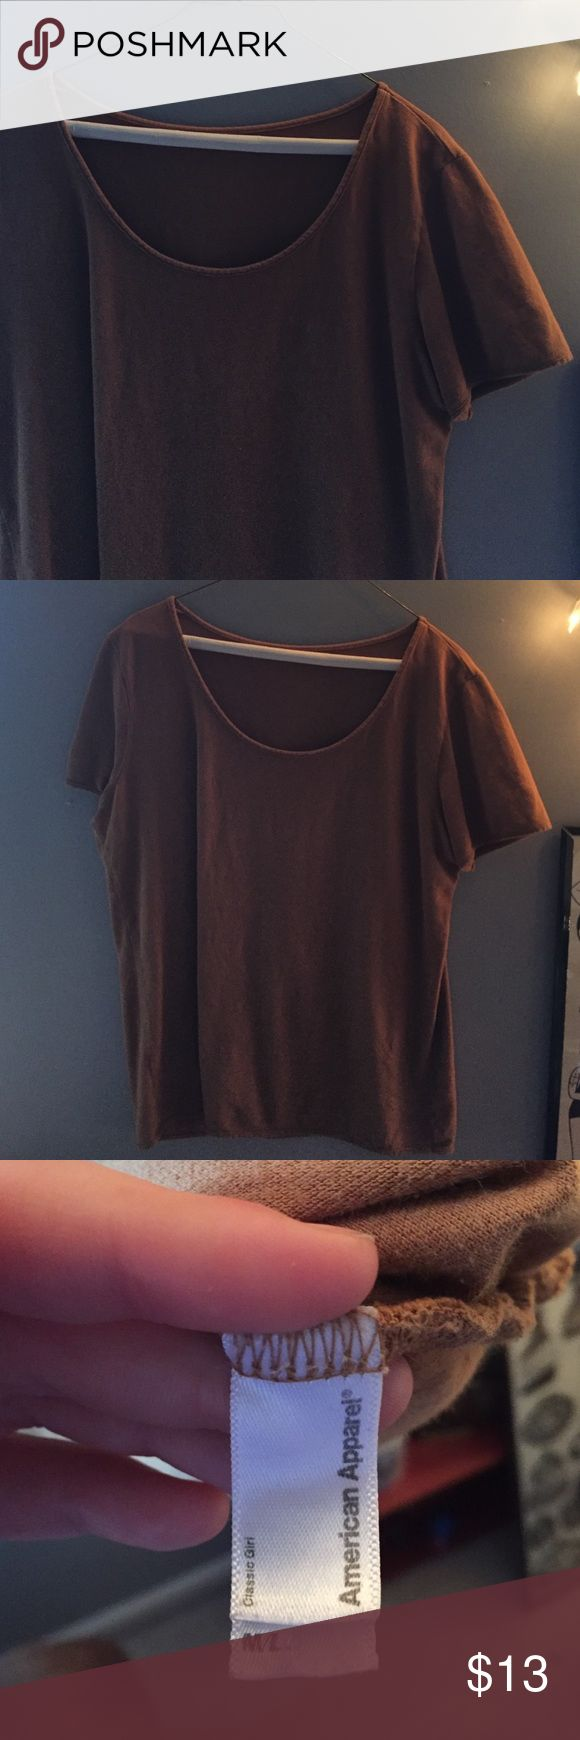 Camel American Apparel Tee Classic go to. Simple camel tee. Goes well with just about anything. Great quality. American Apparel Tops Tees - Short Sleeve